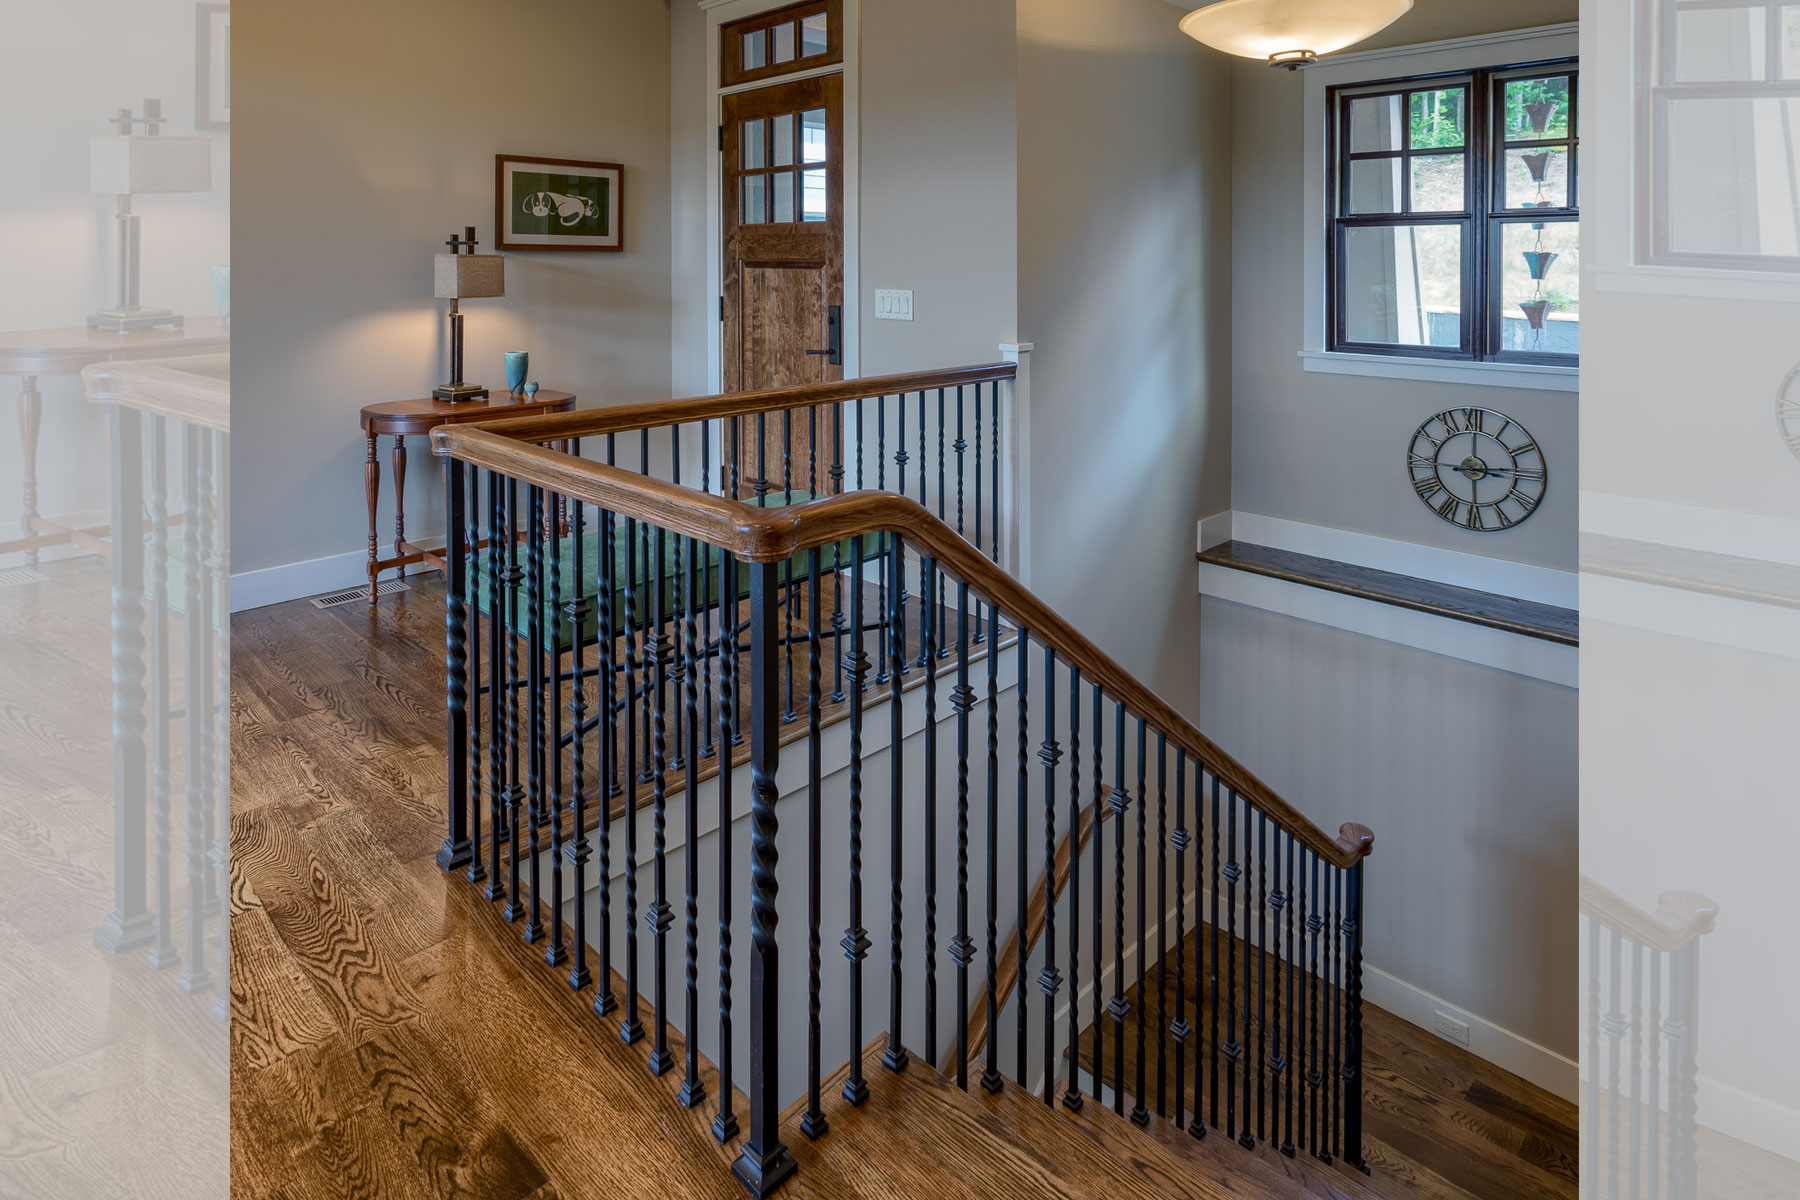 Custom stair rail design for steps leading down to lower level in mountain home